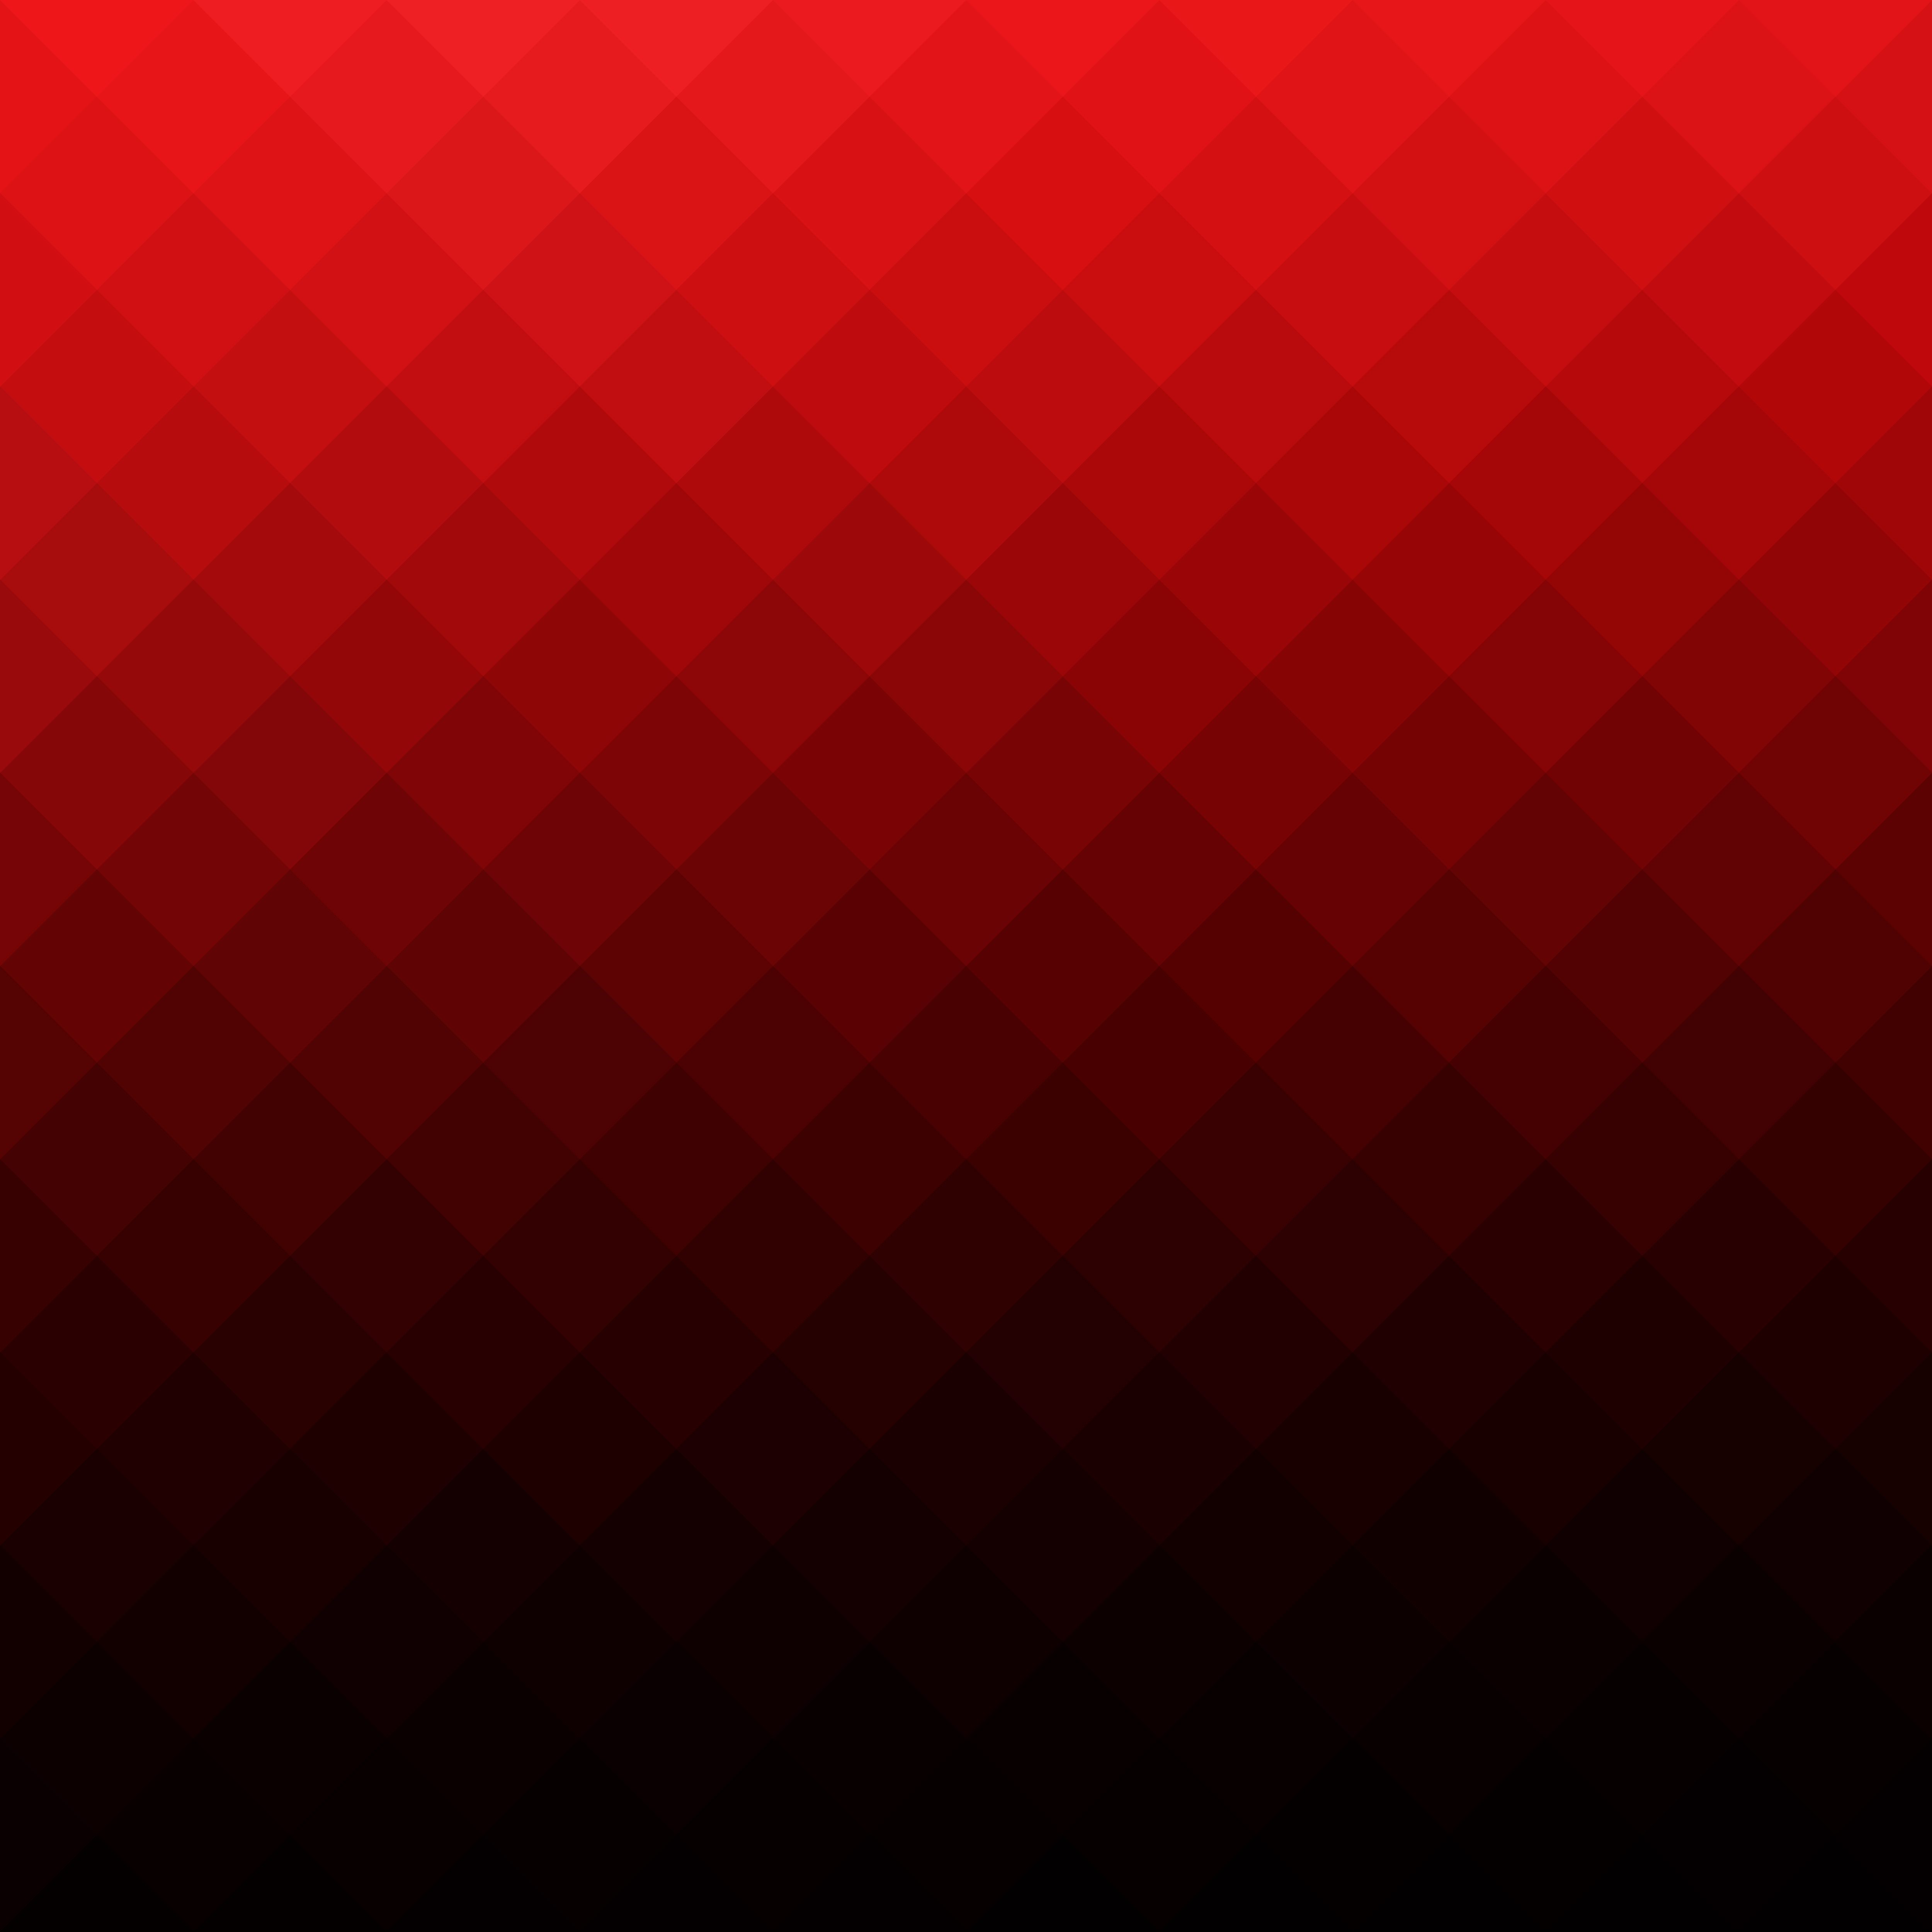 Mosaic Logo Template: Red Square Grid Mosaic Background, Creative Design